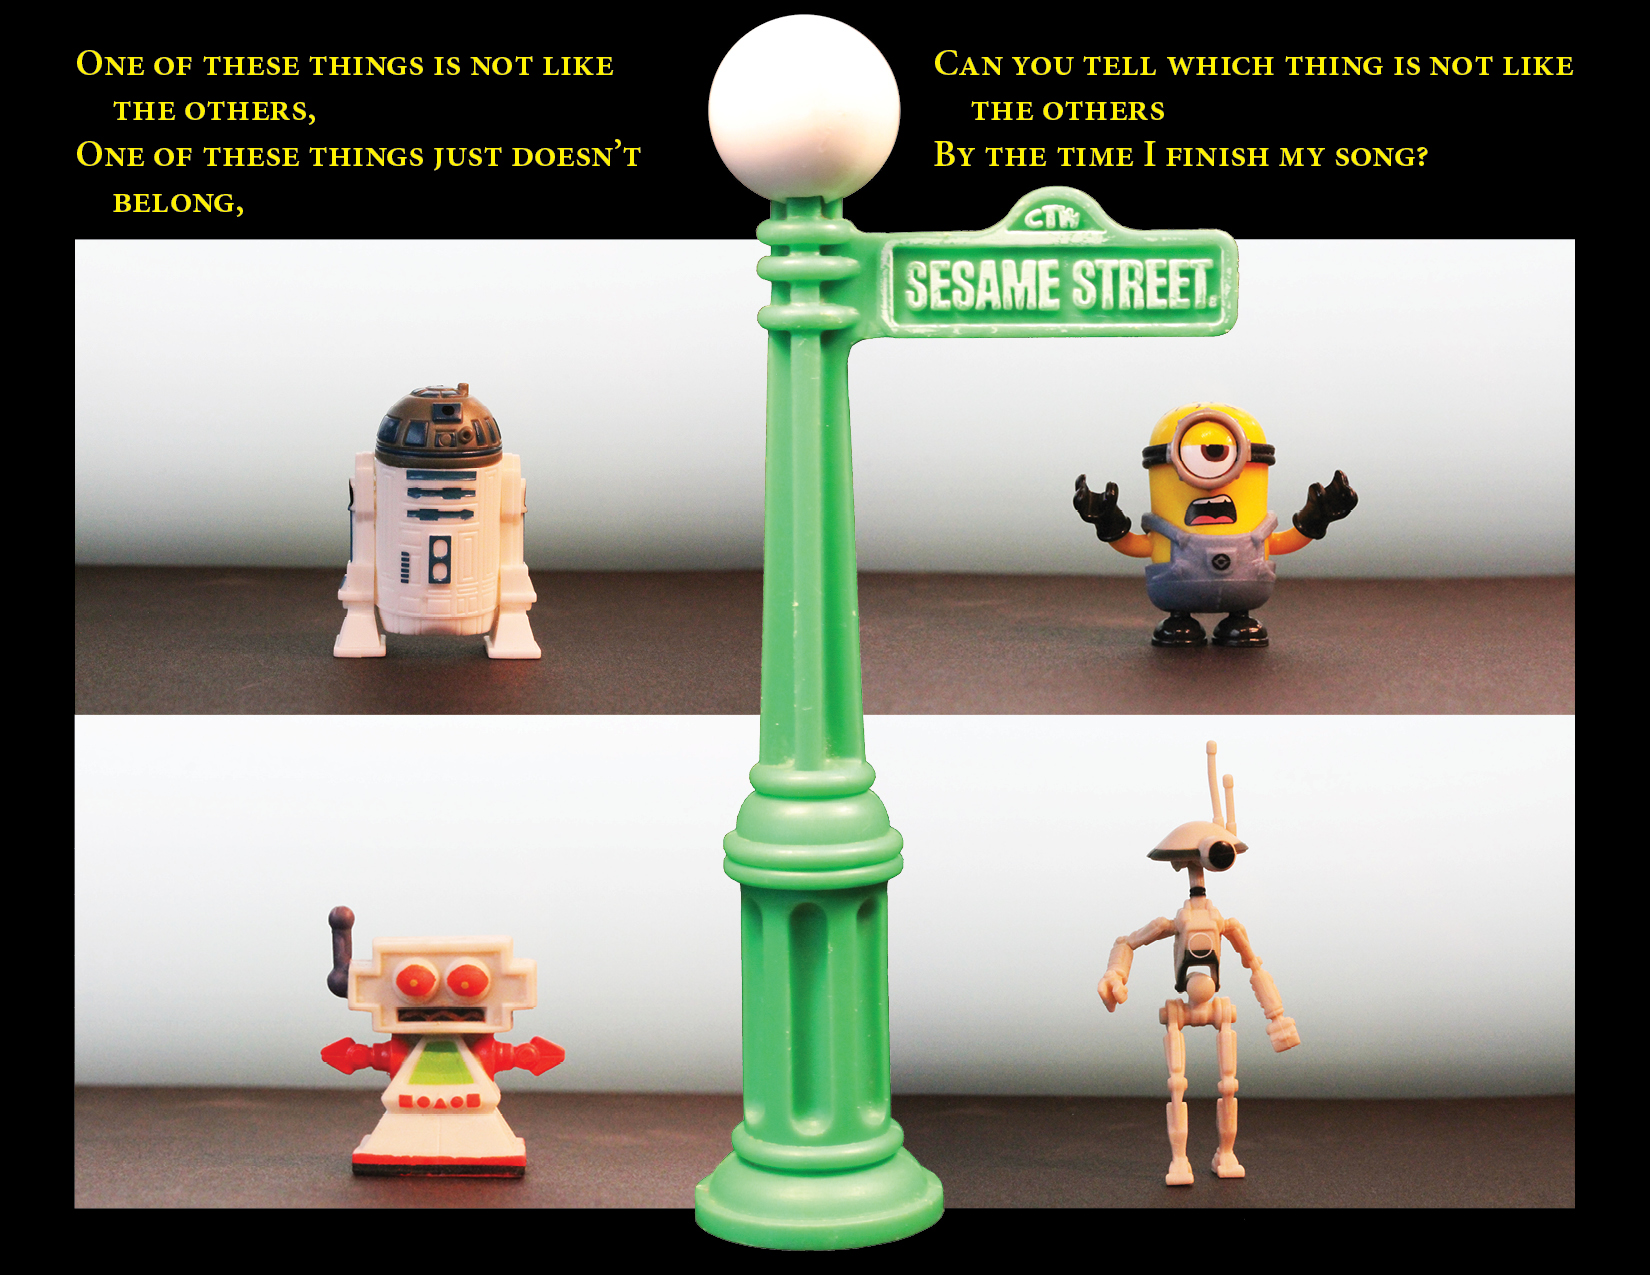 Four figures in four corners of the picture. R2-D2, Dave the minion, Clive the robot, and a Pit droid.